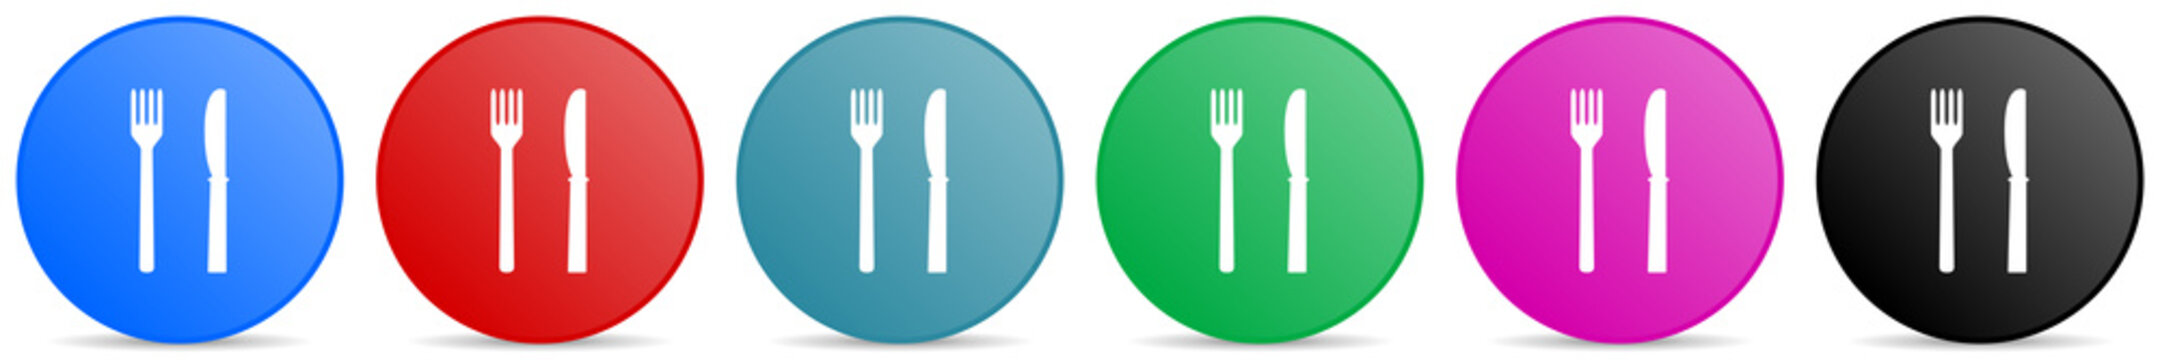 Eat vector icons, set of circle gradient buttons in 6 colors options for webdesign and mobile applications